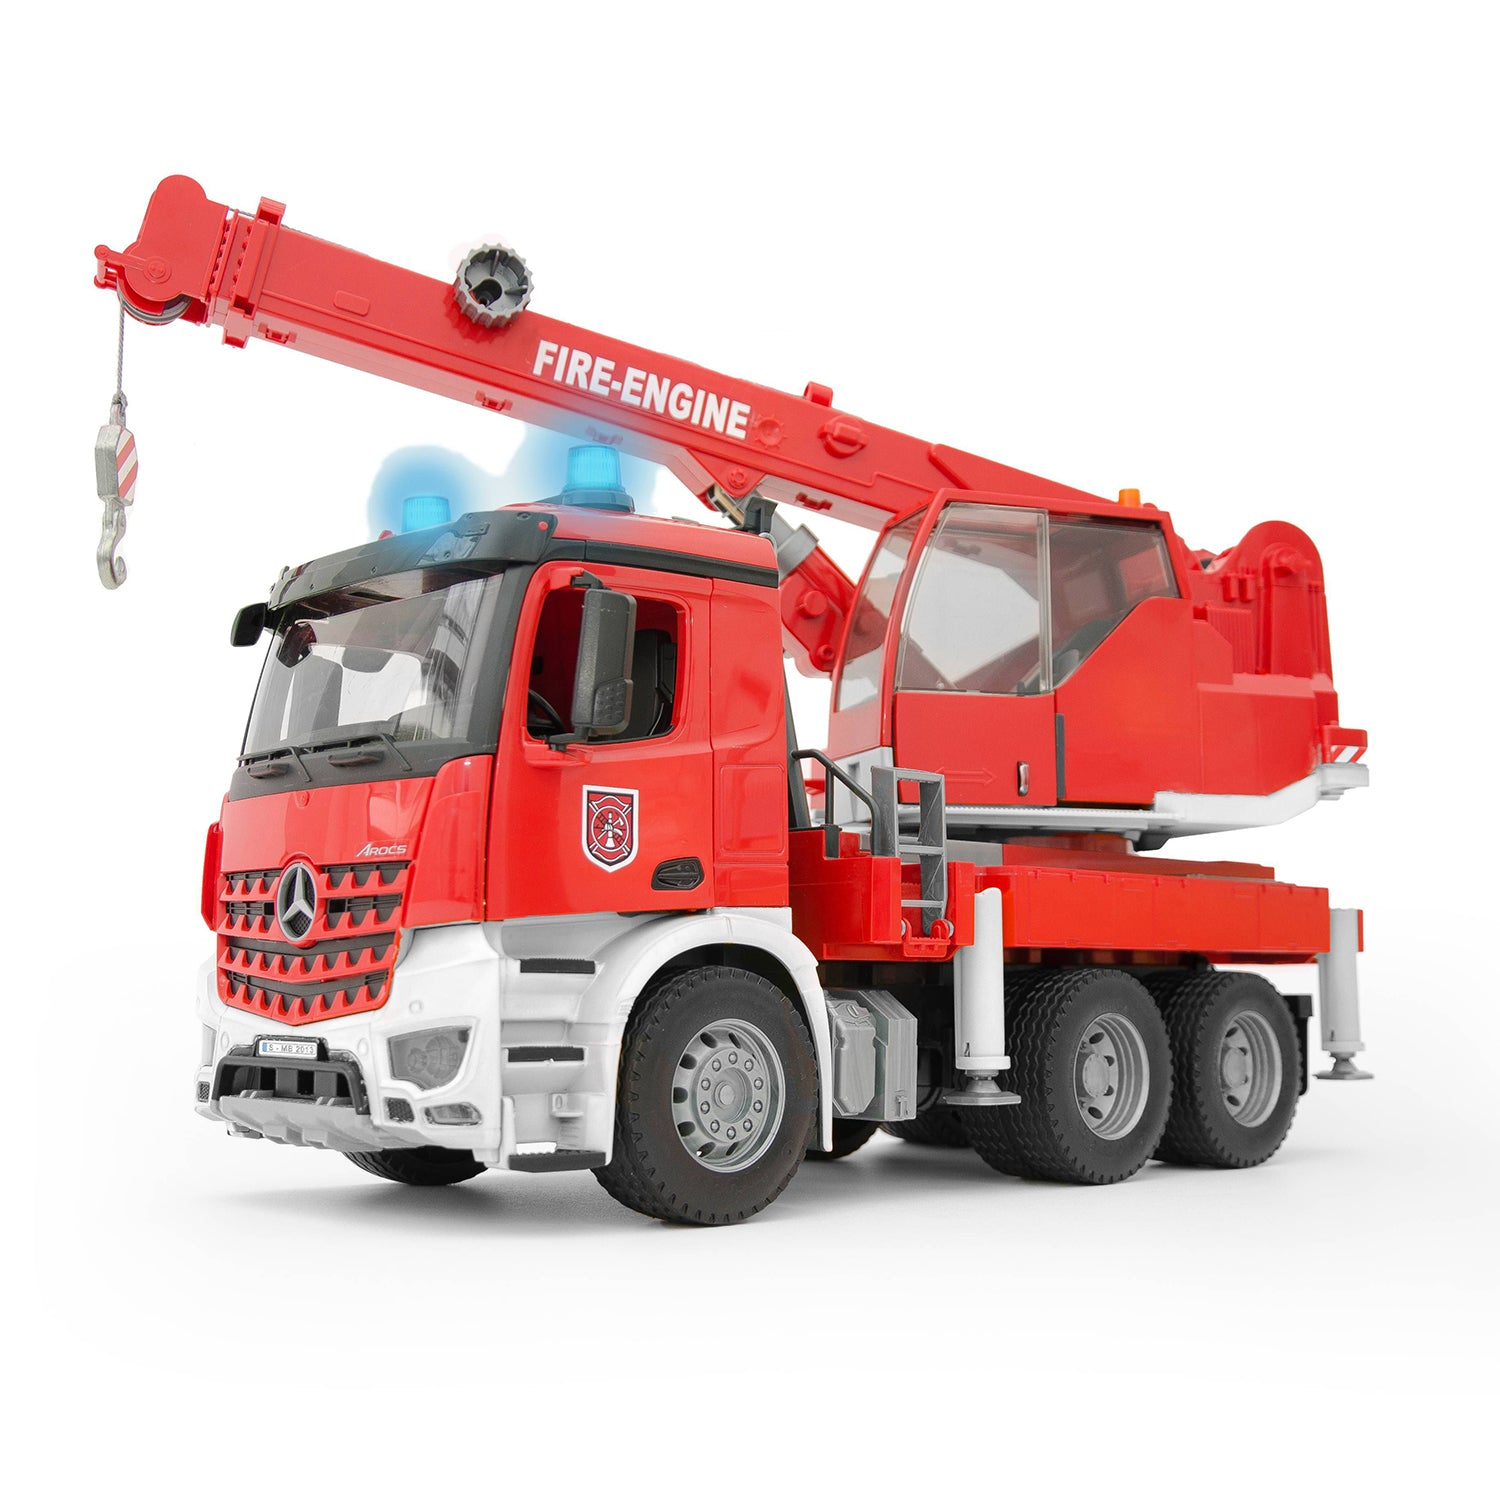 MB Arocs Fire Engine Crane Truck